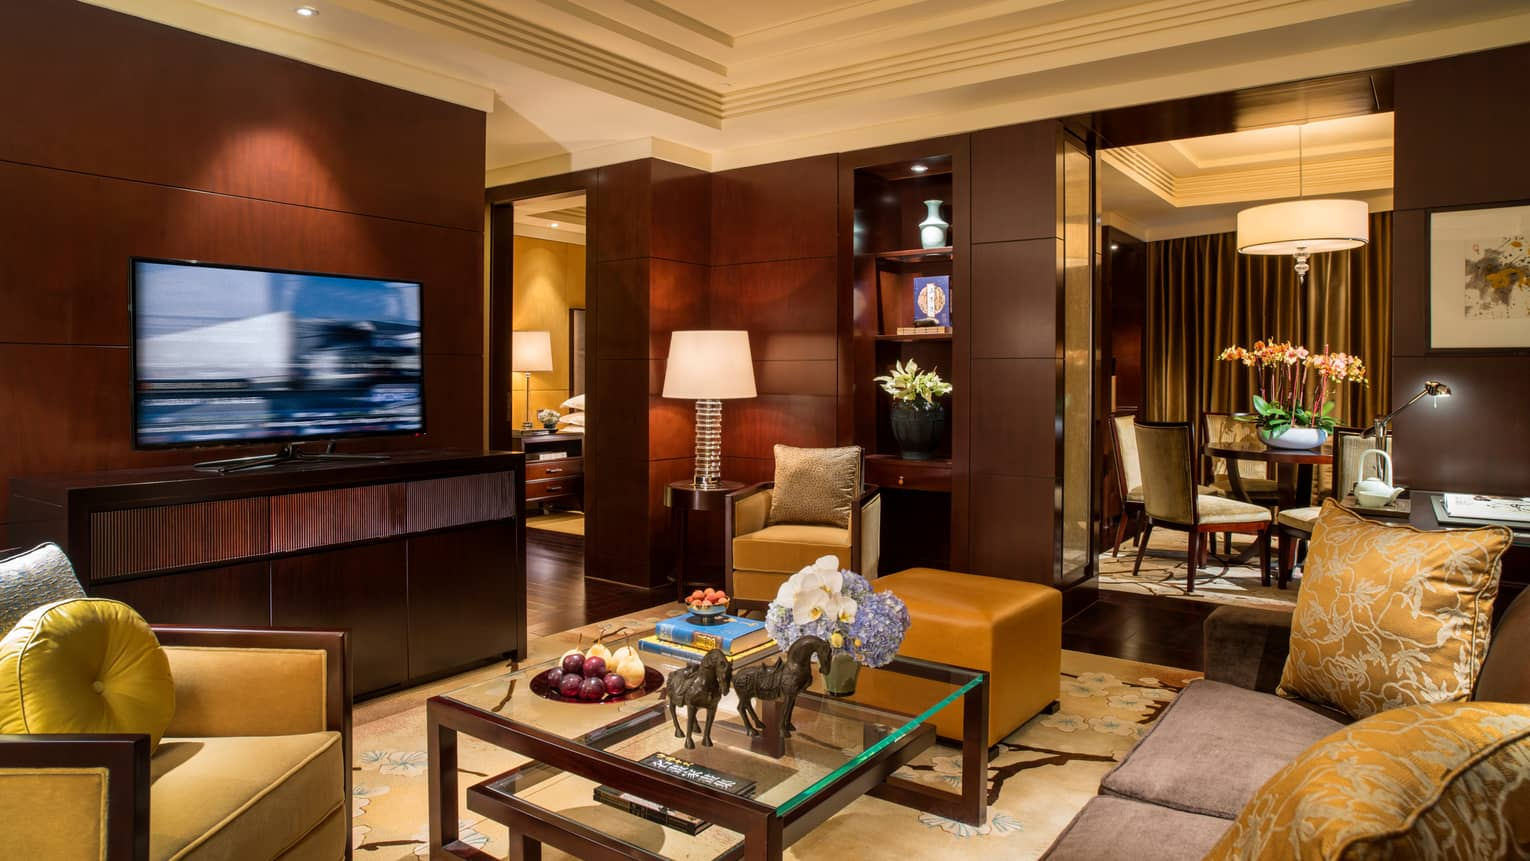 Beijing Suite living room with sofa, gold pillows and armchair, large TV, wood panel walls